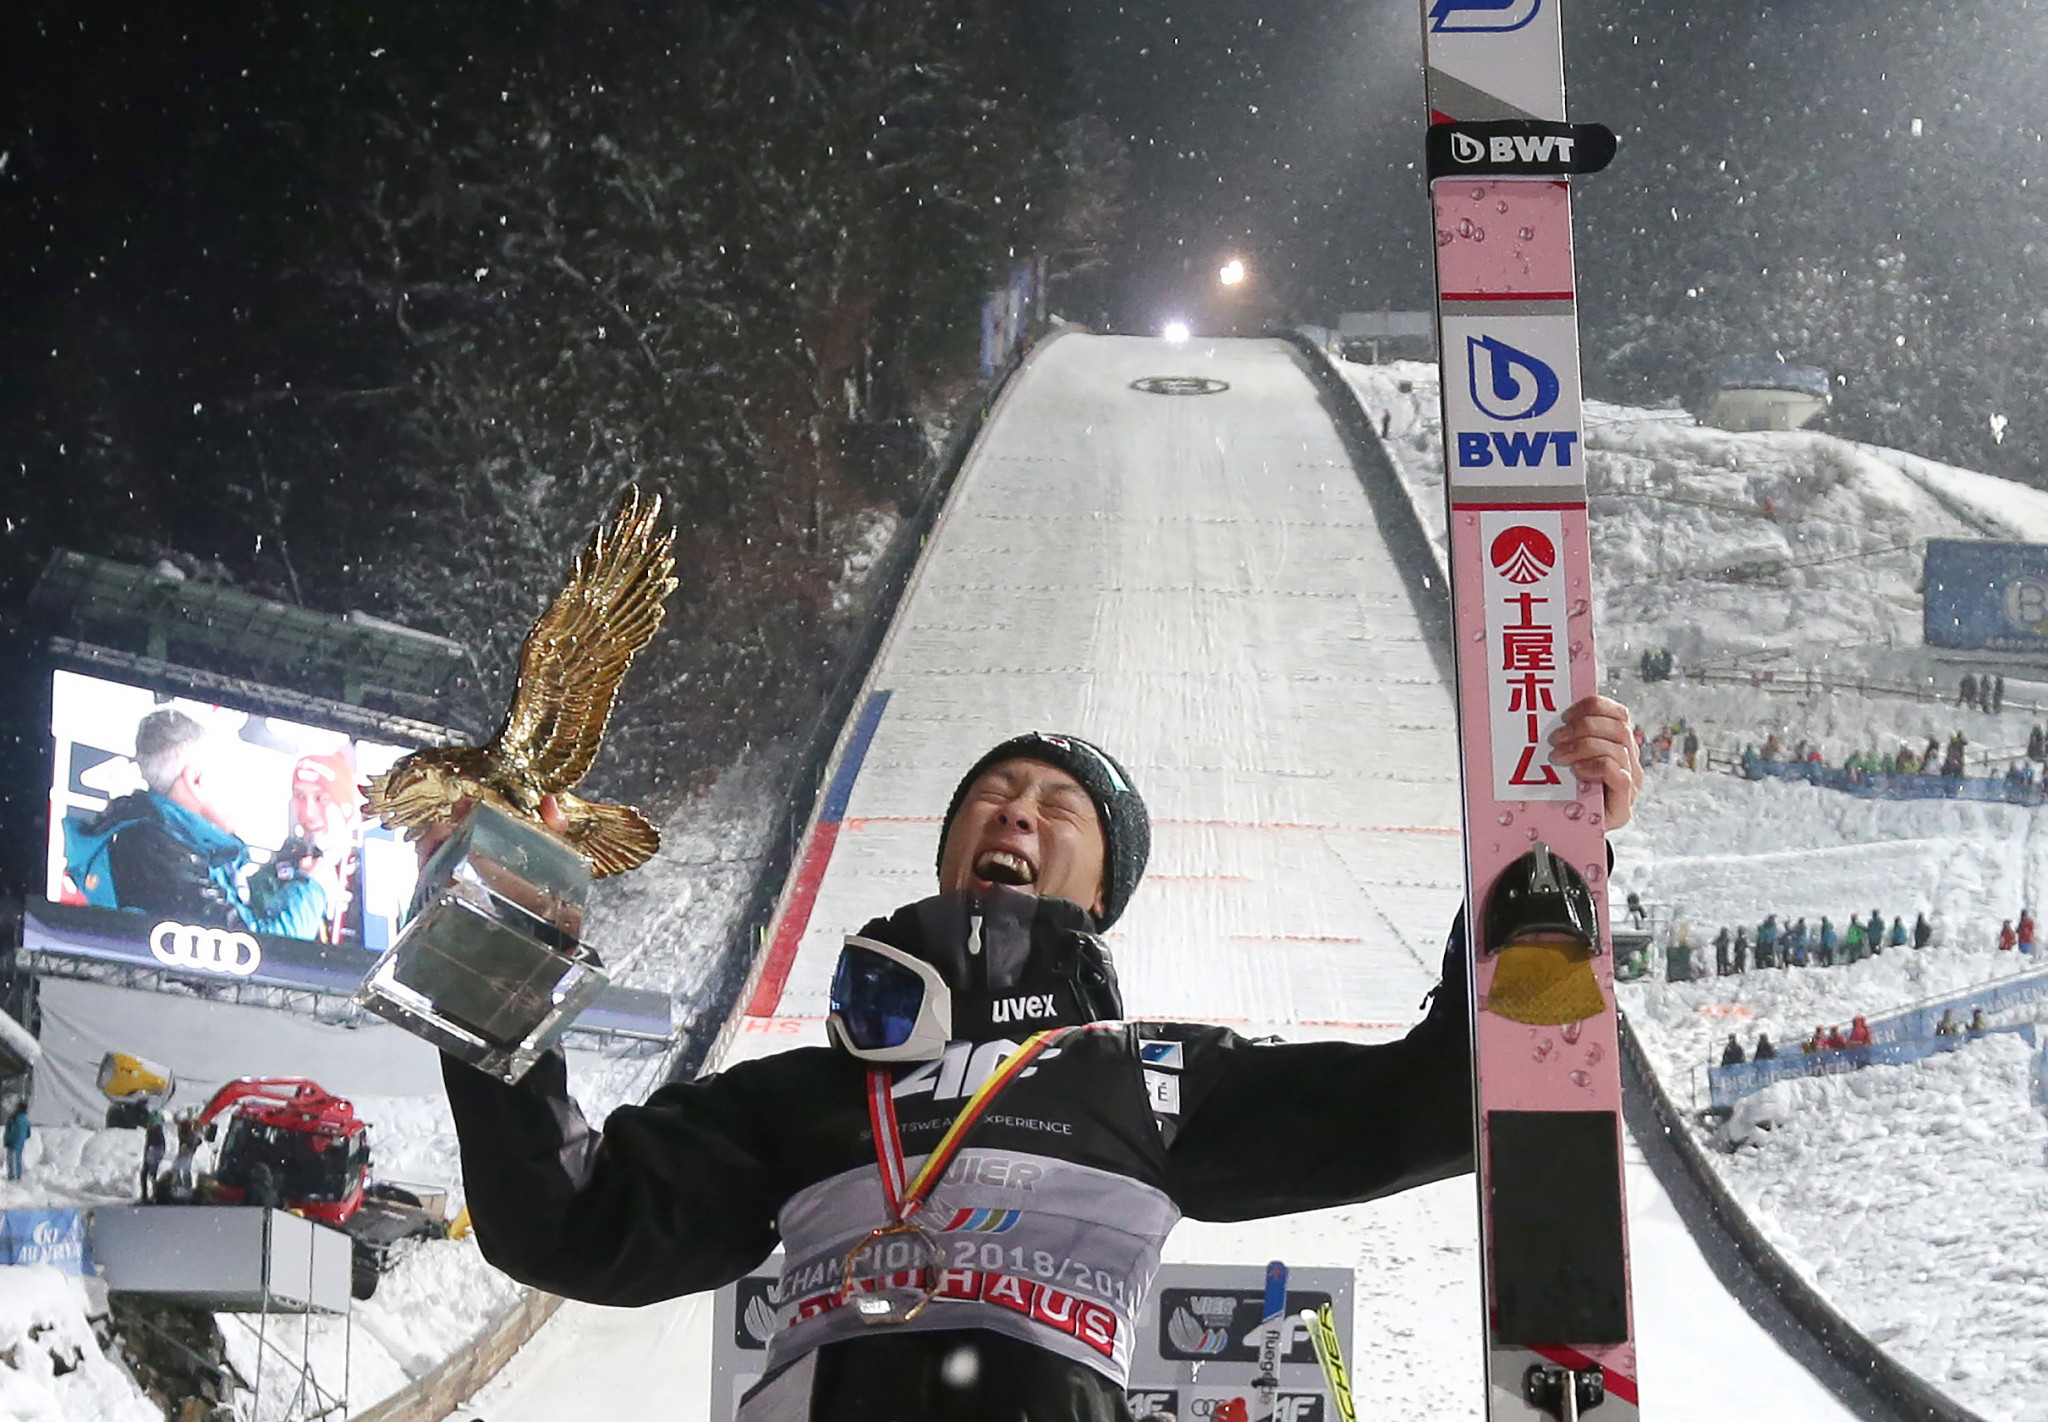 Kobayashi becomes third man to complete Four Hills Tournament clean sweep with win in Bischofshofen